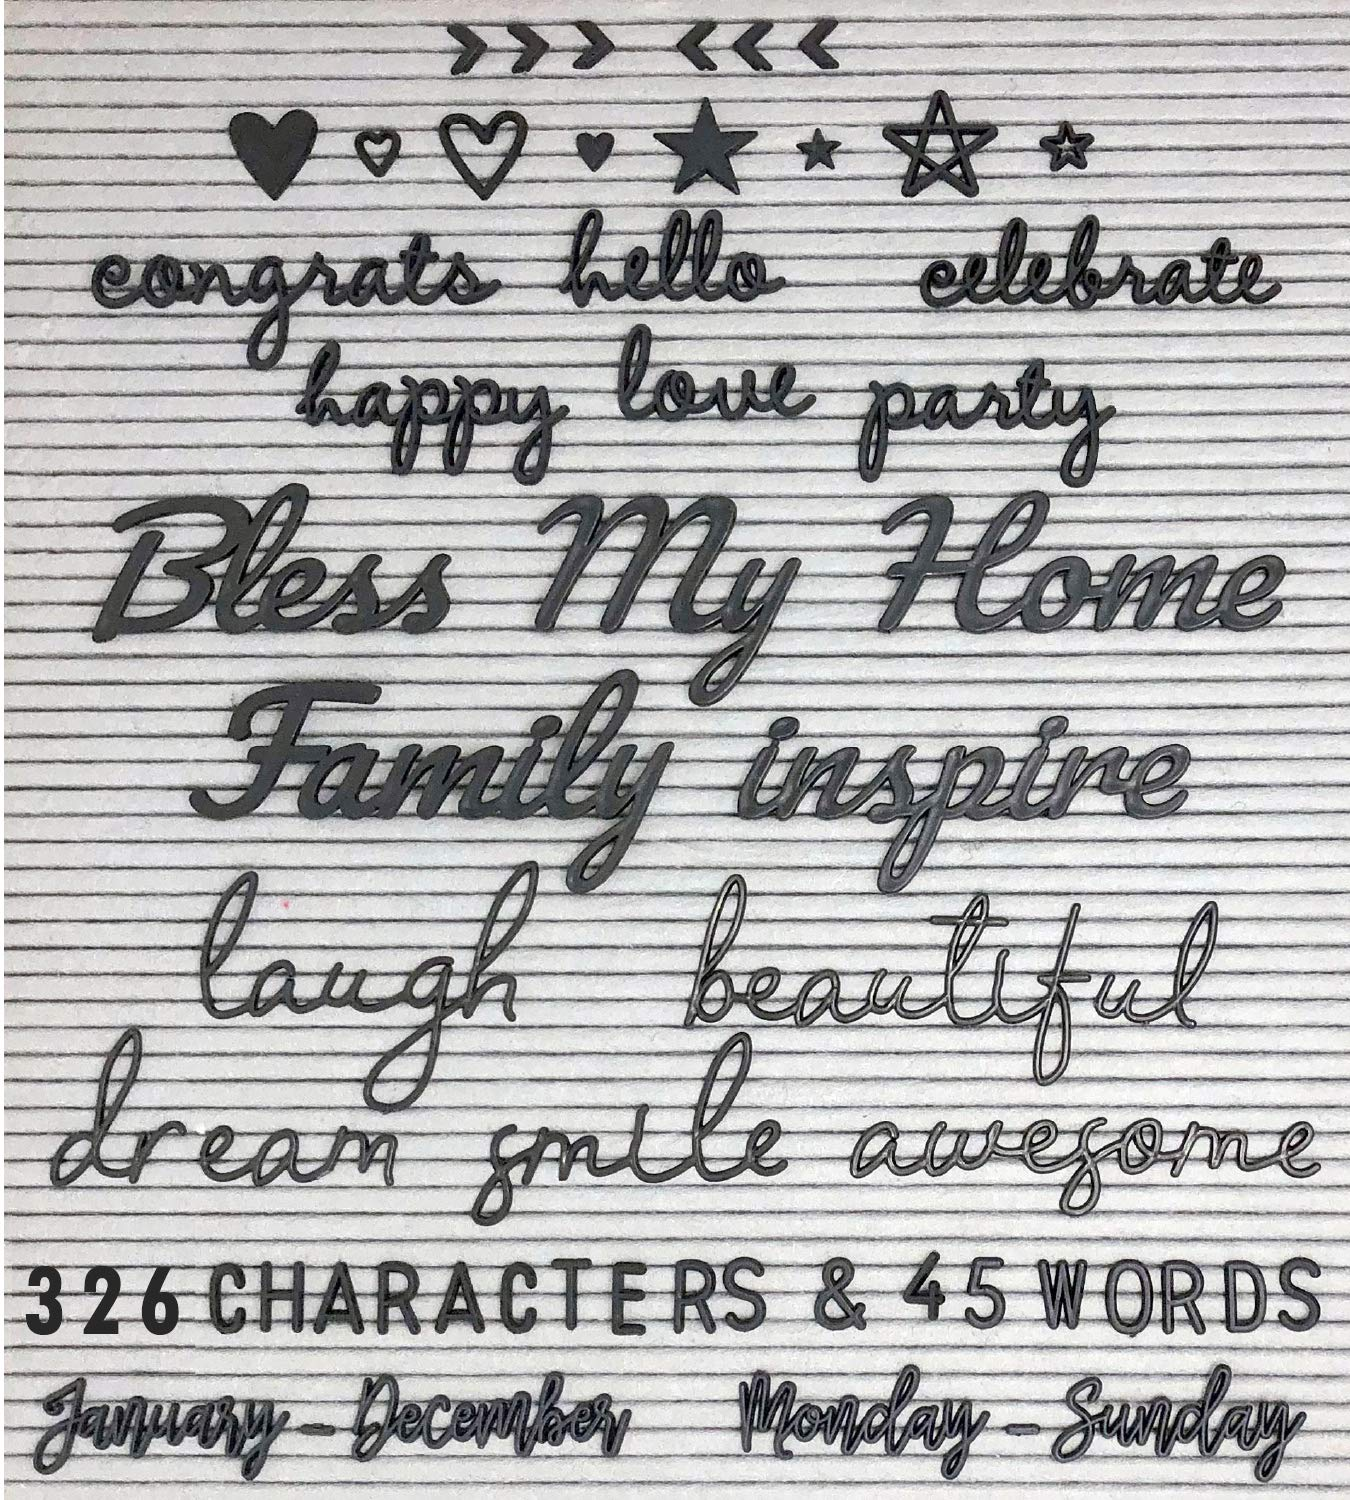 Black Letter Board Letters and Words for Changeable Letter Boards and Felt Letterboards - 371 Piece Mega Bundle | 45 1-3 Inch Cursive Words | Characters, Letters, Symbols | Birth Announcements